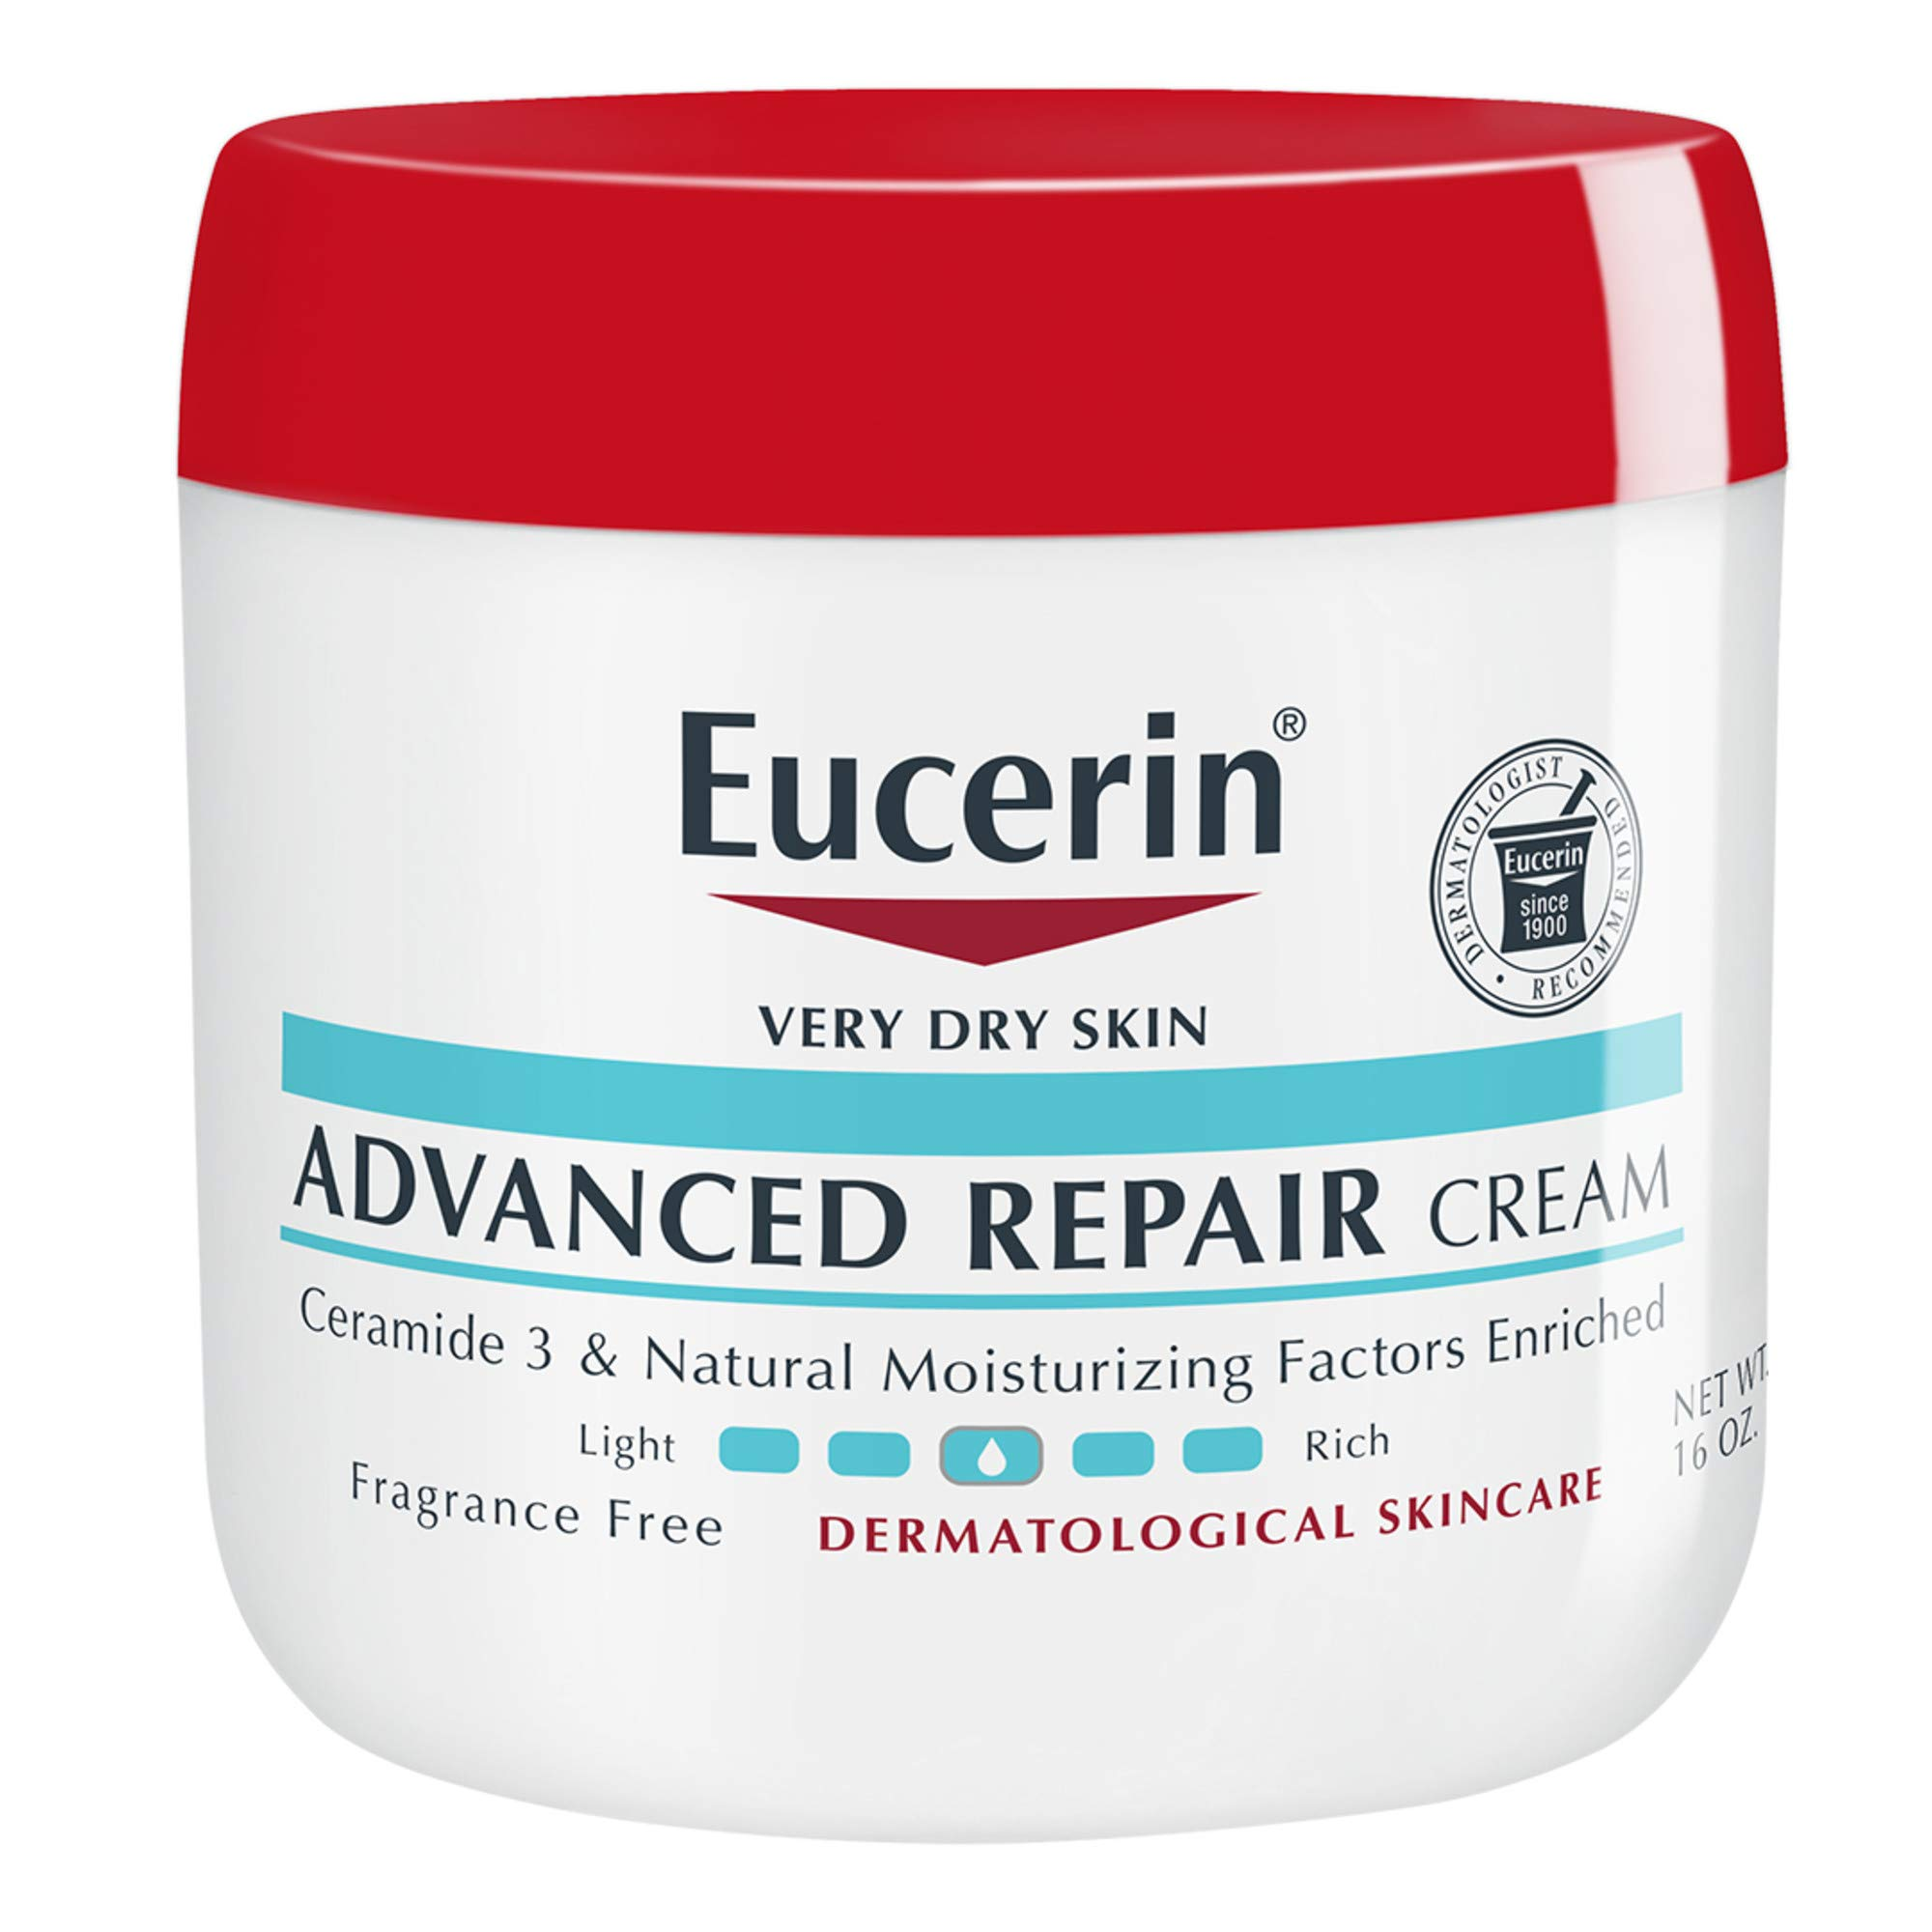 Eucerin Advanced Repair Cream | Body Moisturizer for Very Dry Skin | Body Cream with Ceramide 3 & Natural Moisturizing Factors | Fragrance Free | 16 ounce Jar